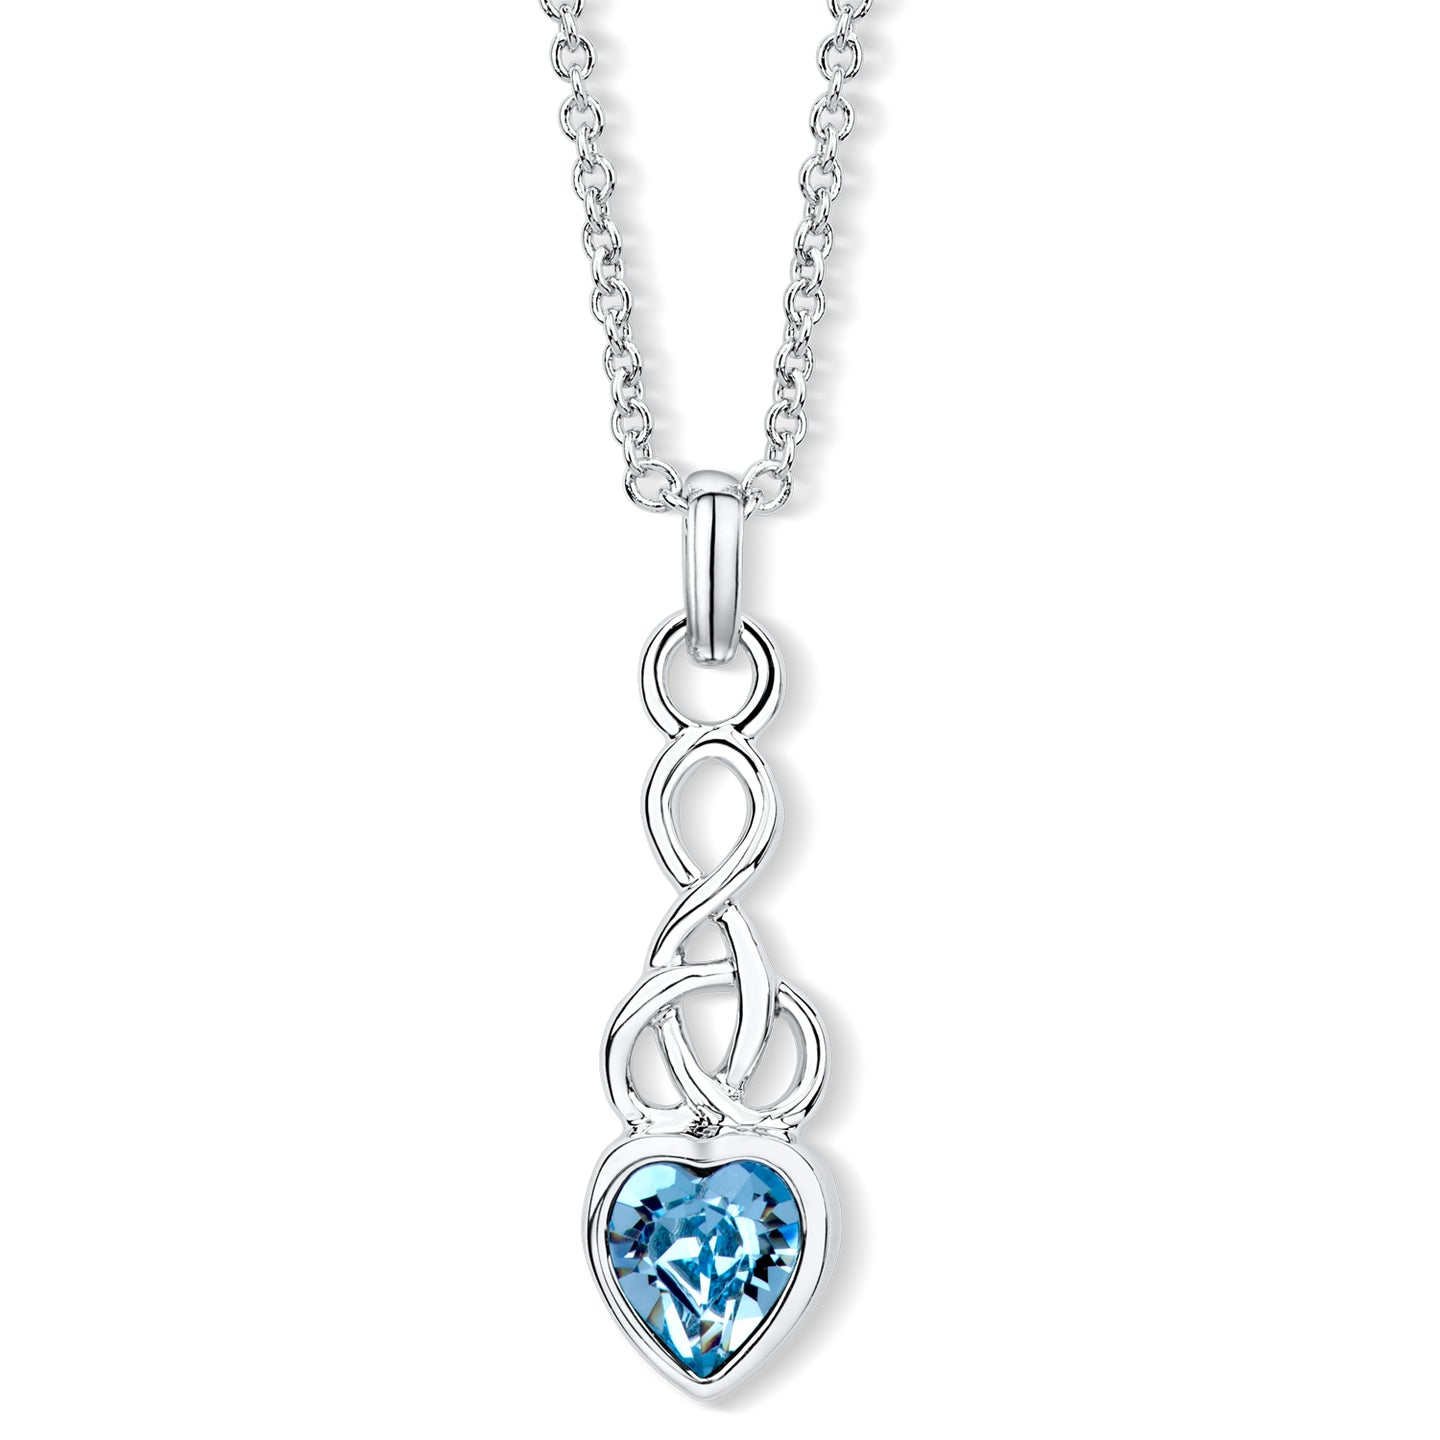 Celtic Heart Pendant with Aquamarine Crystal